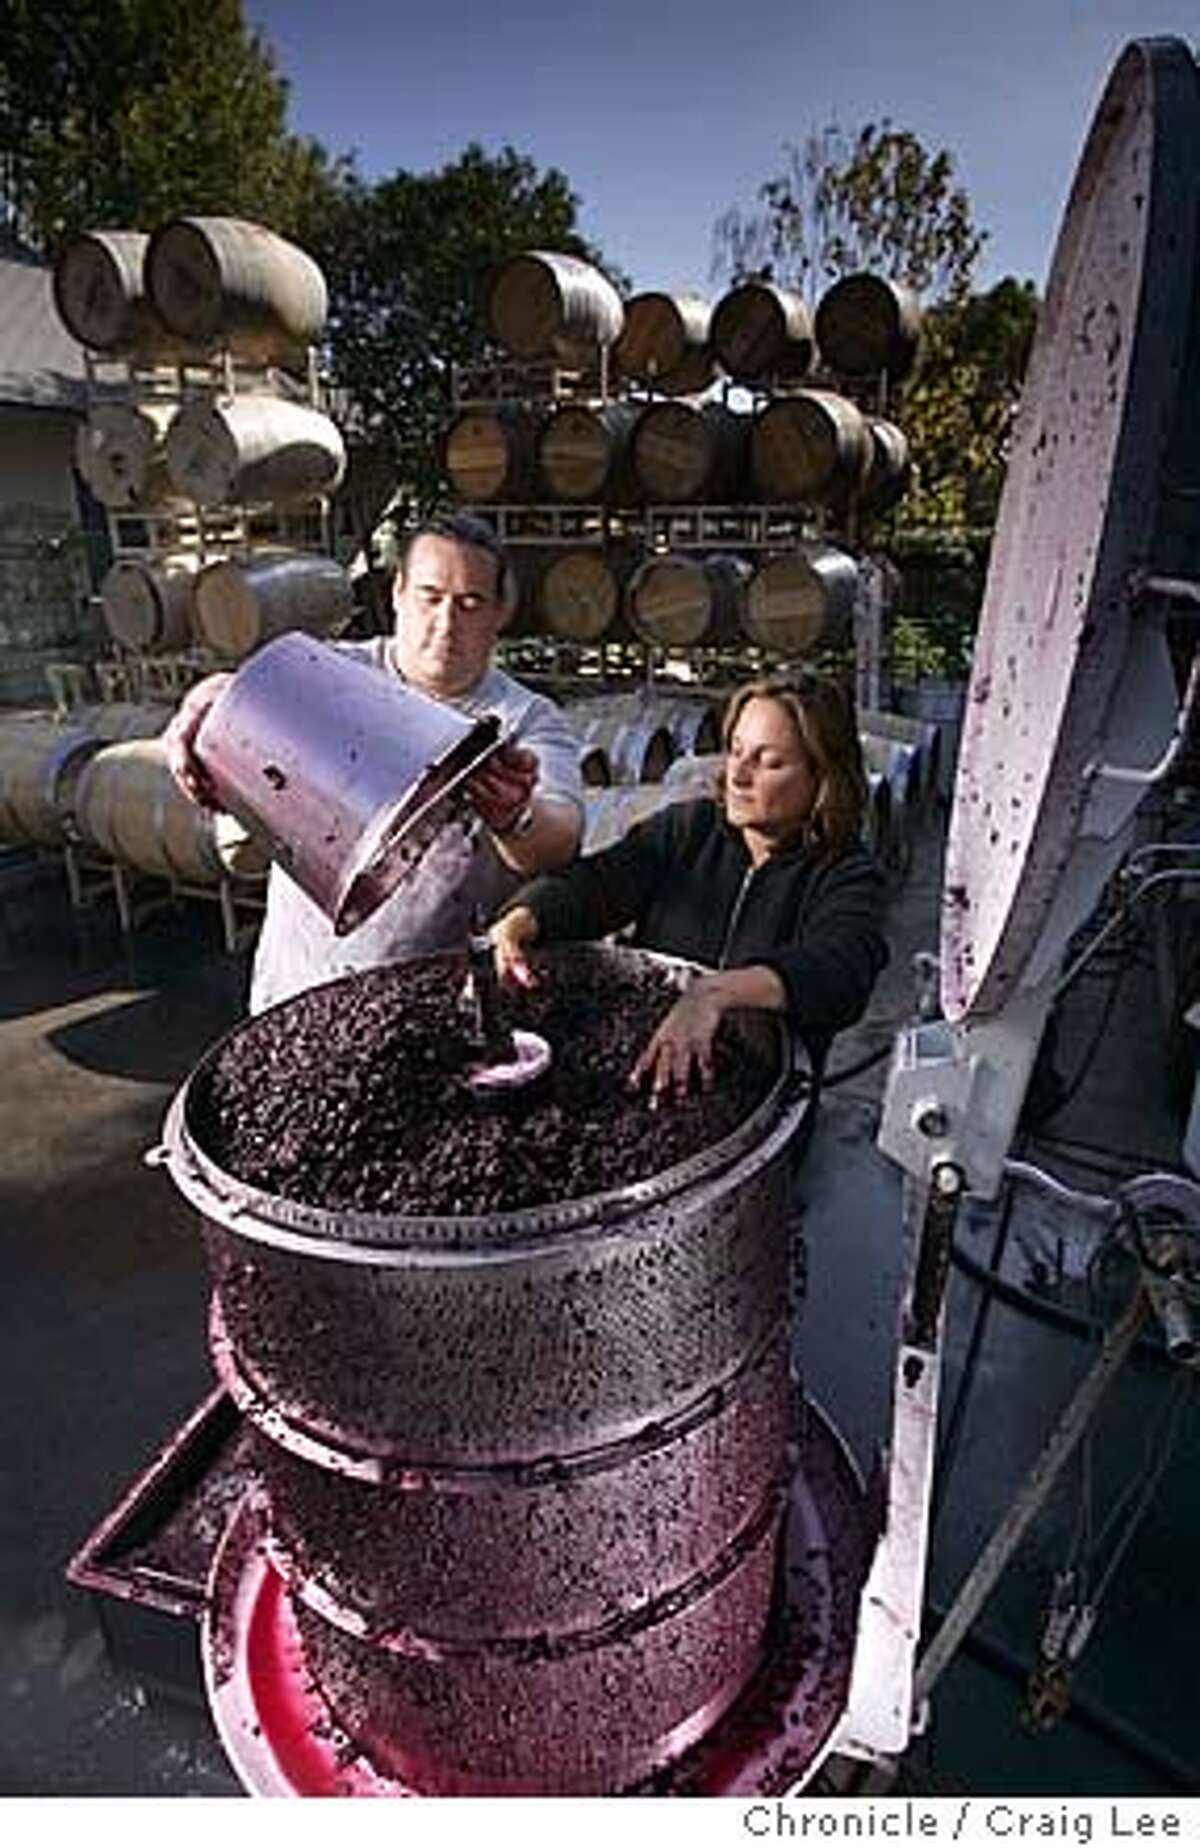 Merus Wines owners Mark Herold (left) and his wife, Erika Gottl (right) in their garage winery in Napa. Story is about people who make wines in garages or other small sites. Photo of them filling the basket bladder press. Event on 10/23/04 in Napa. Craig Lee / The Chronicle